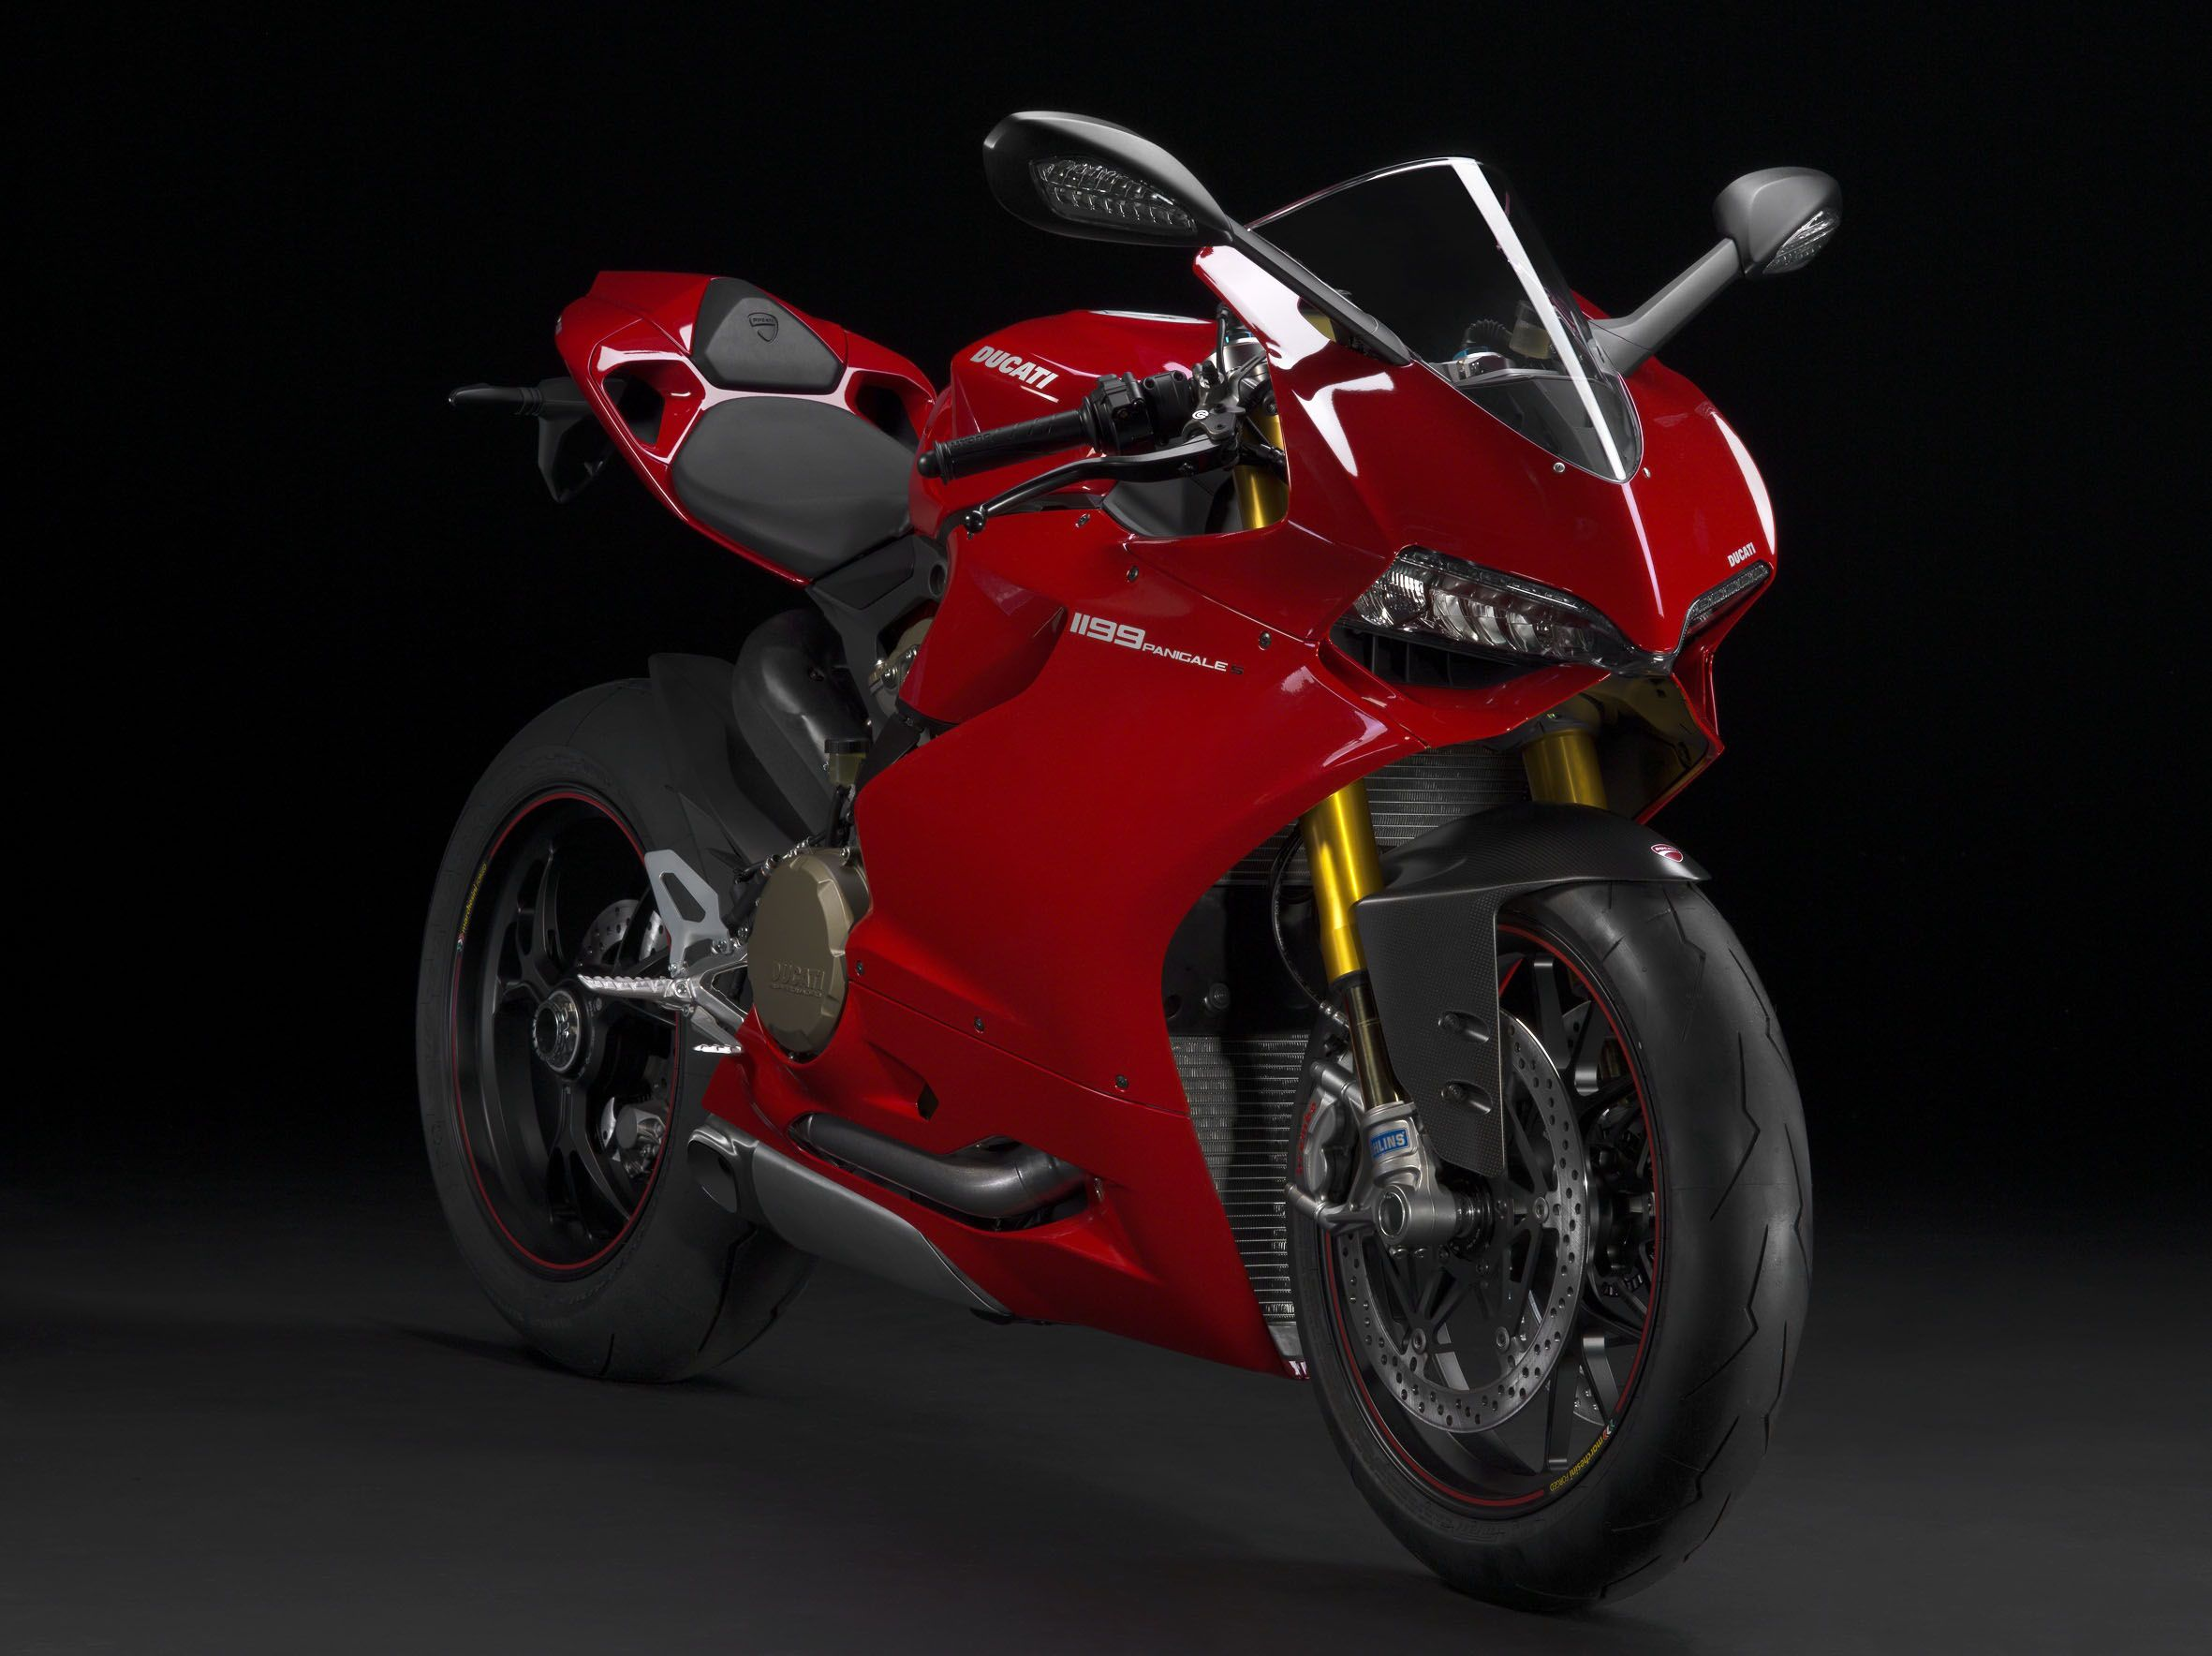 Ducati 1199 Panigale S Wallpaper HD Get Free Top Quality For Your Desktop PC Background Ios Or Android Mobile Phones